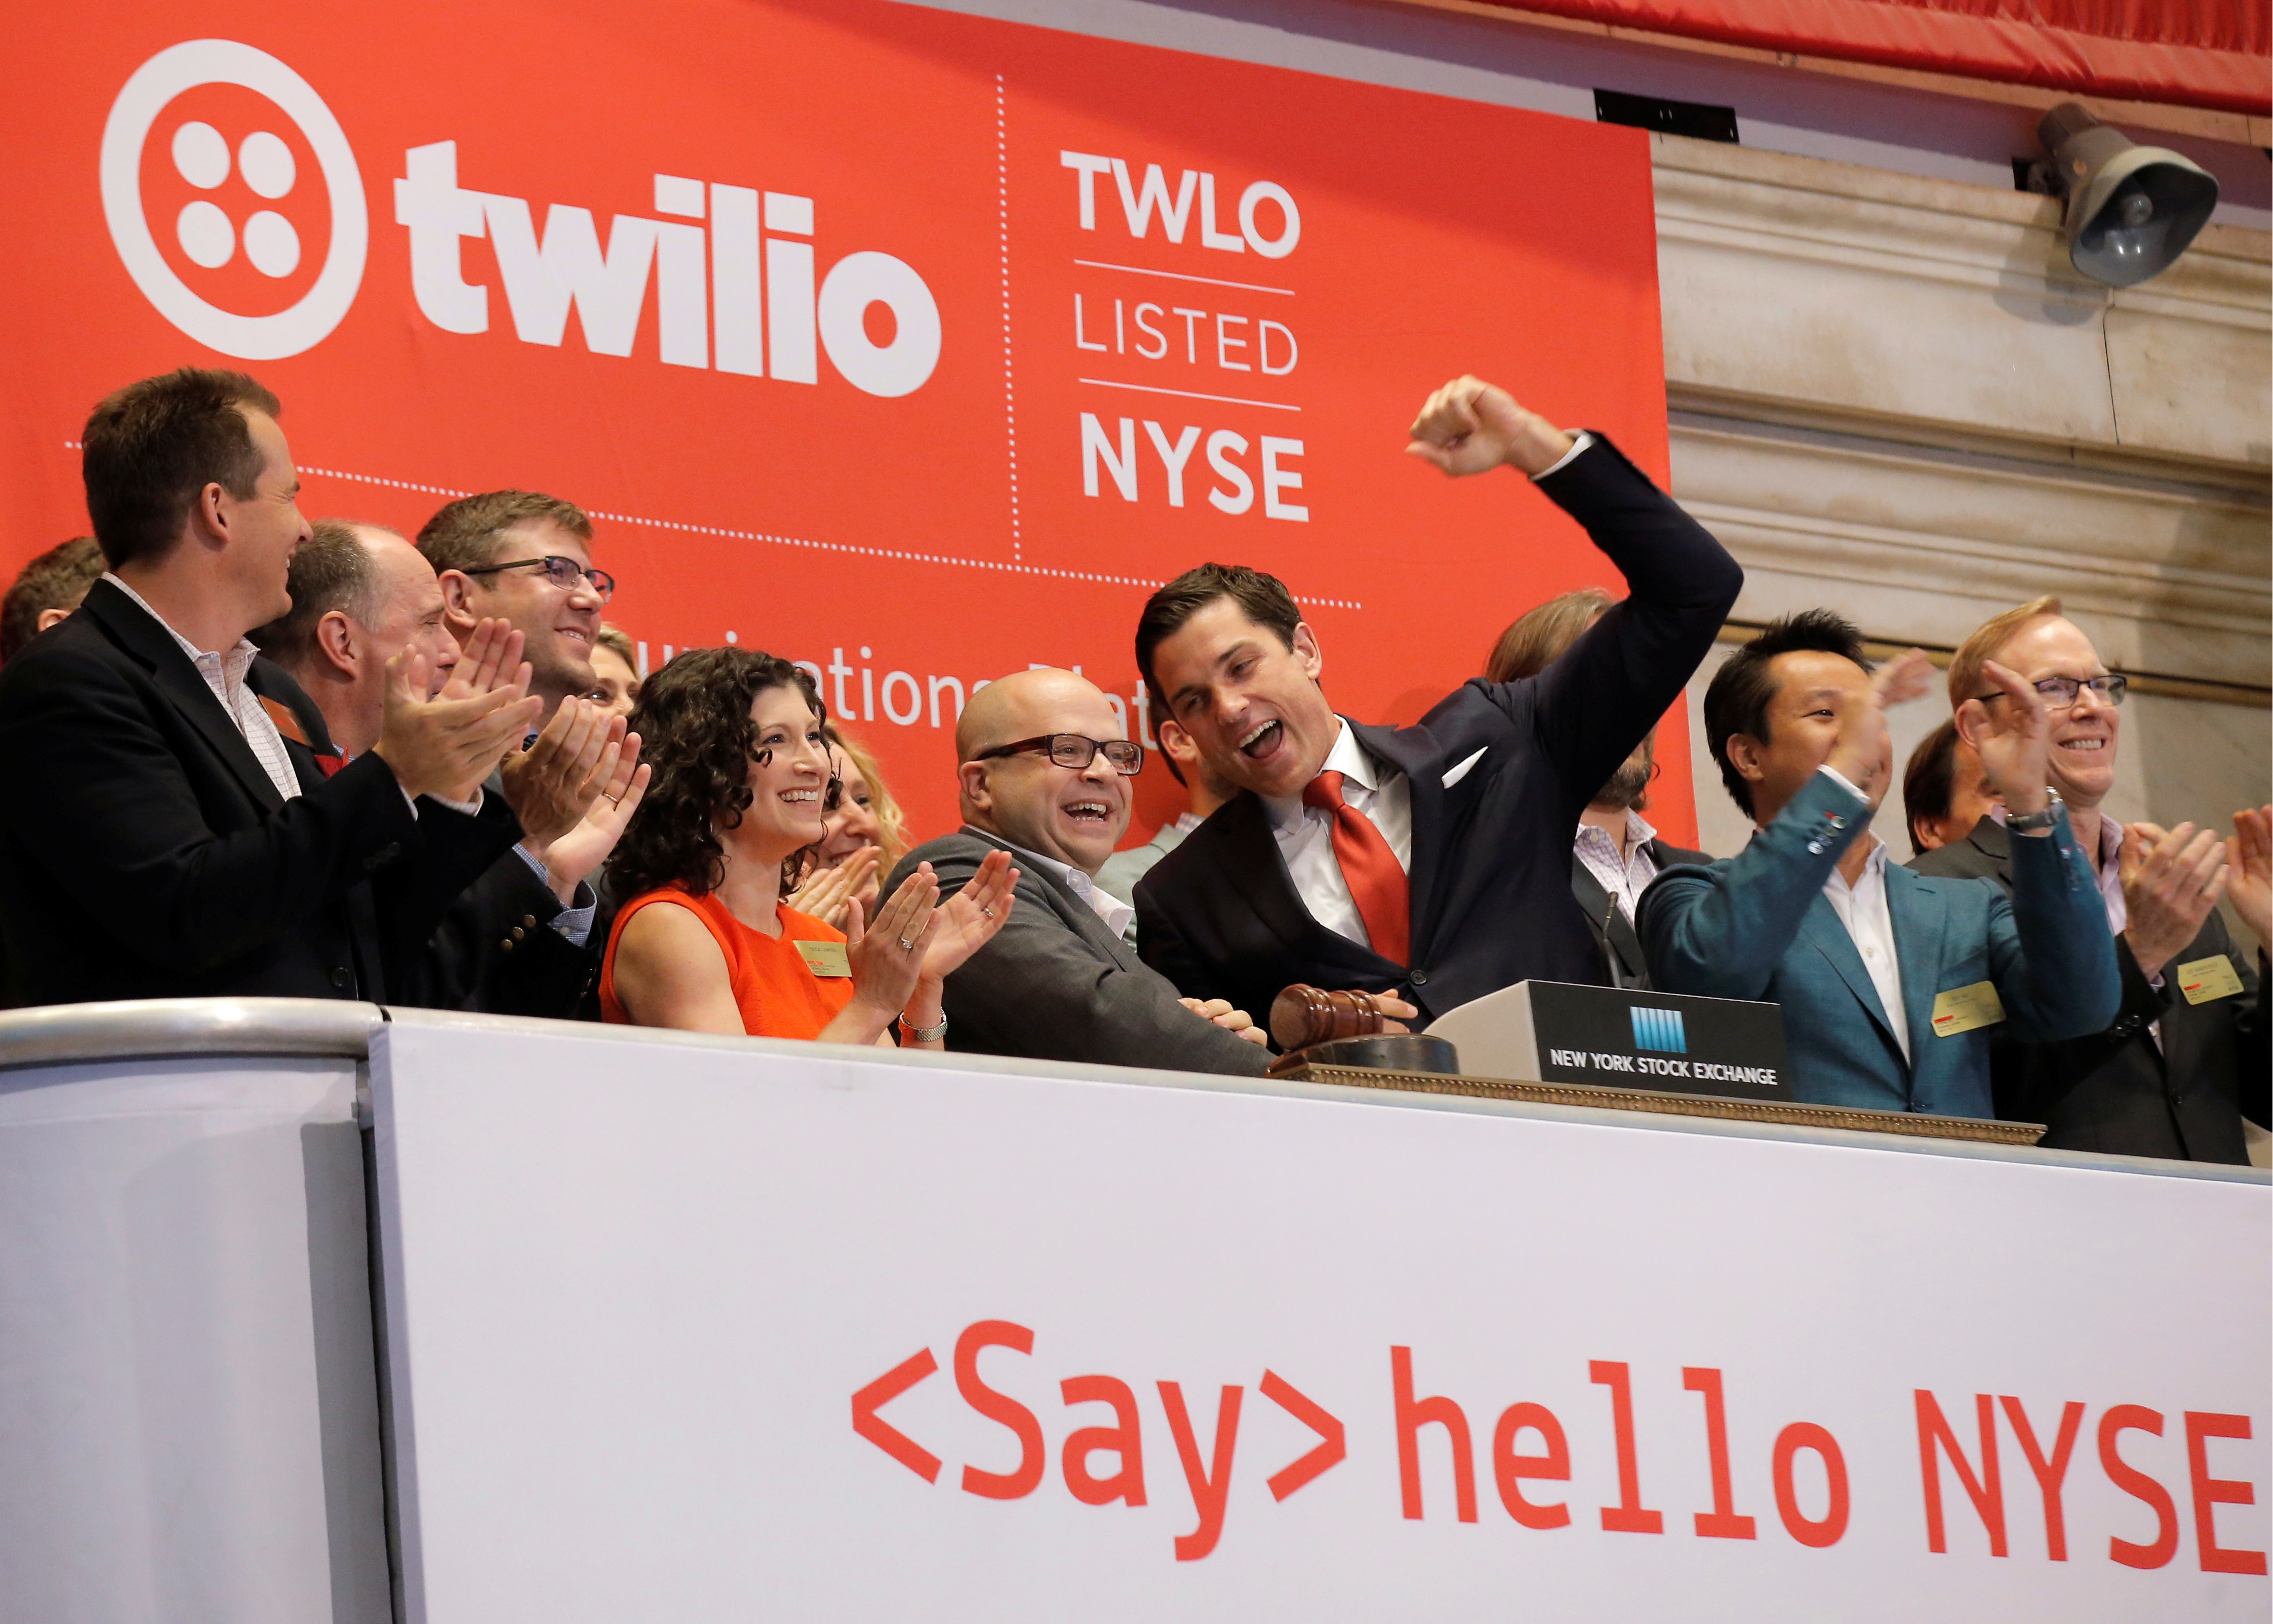 Jeff Lawson, Founder, CEO, & Chairman of Twilio rings the opening bell to celebrate his company's IPO at the NYSE